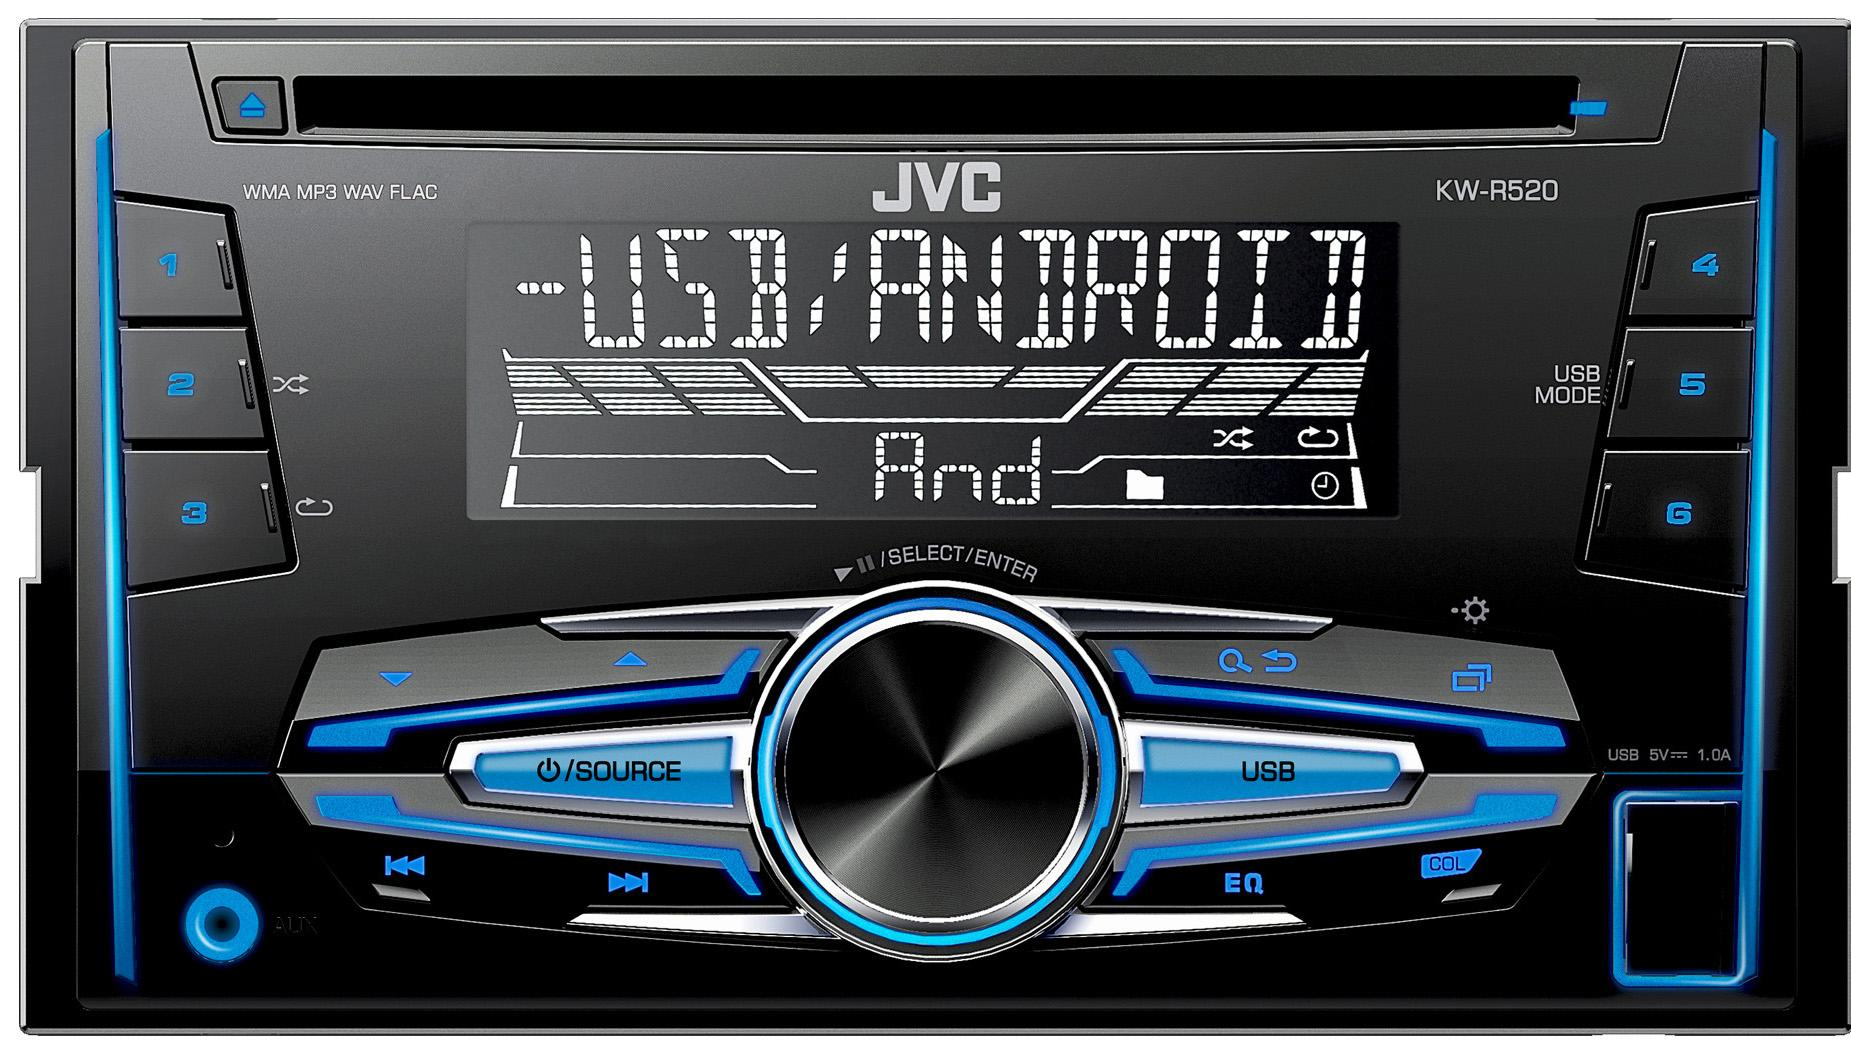 jvc kw r520 double din car stereo rh halfords com JVC Surround Sound Manual User Manual JVC KD S37